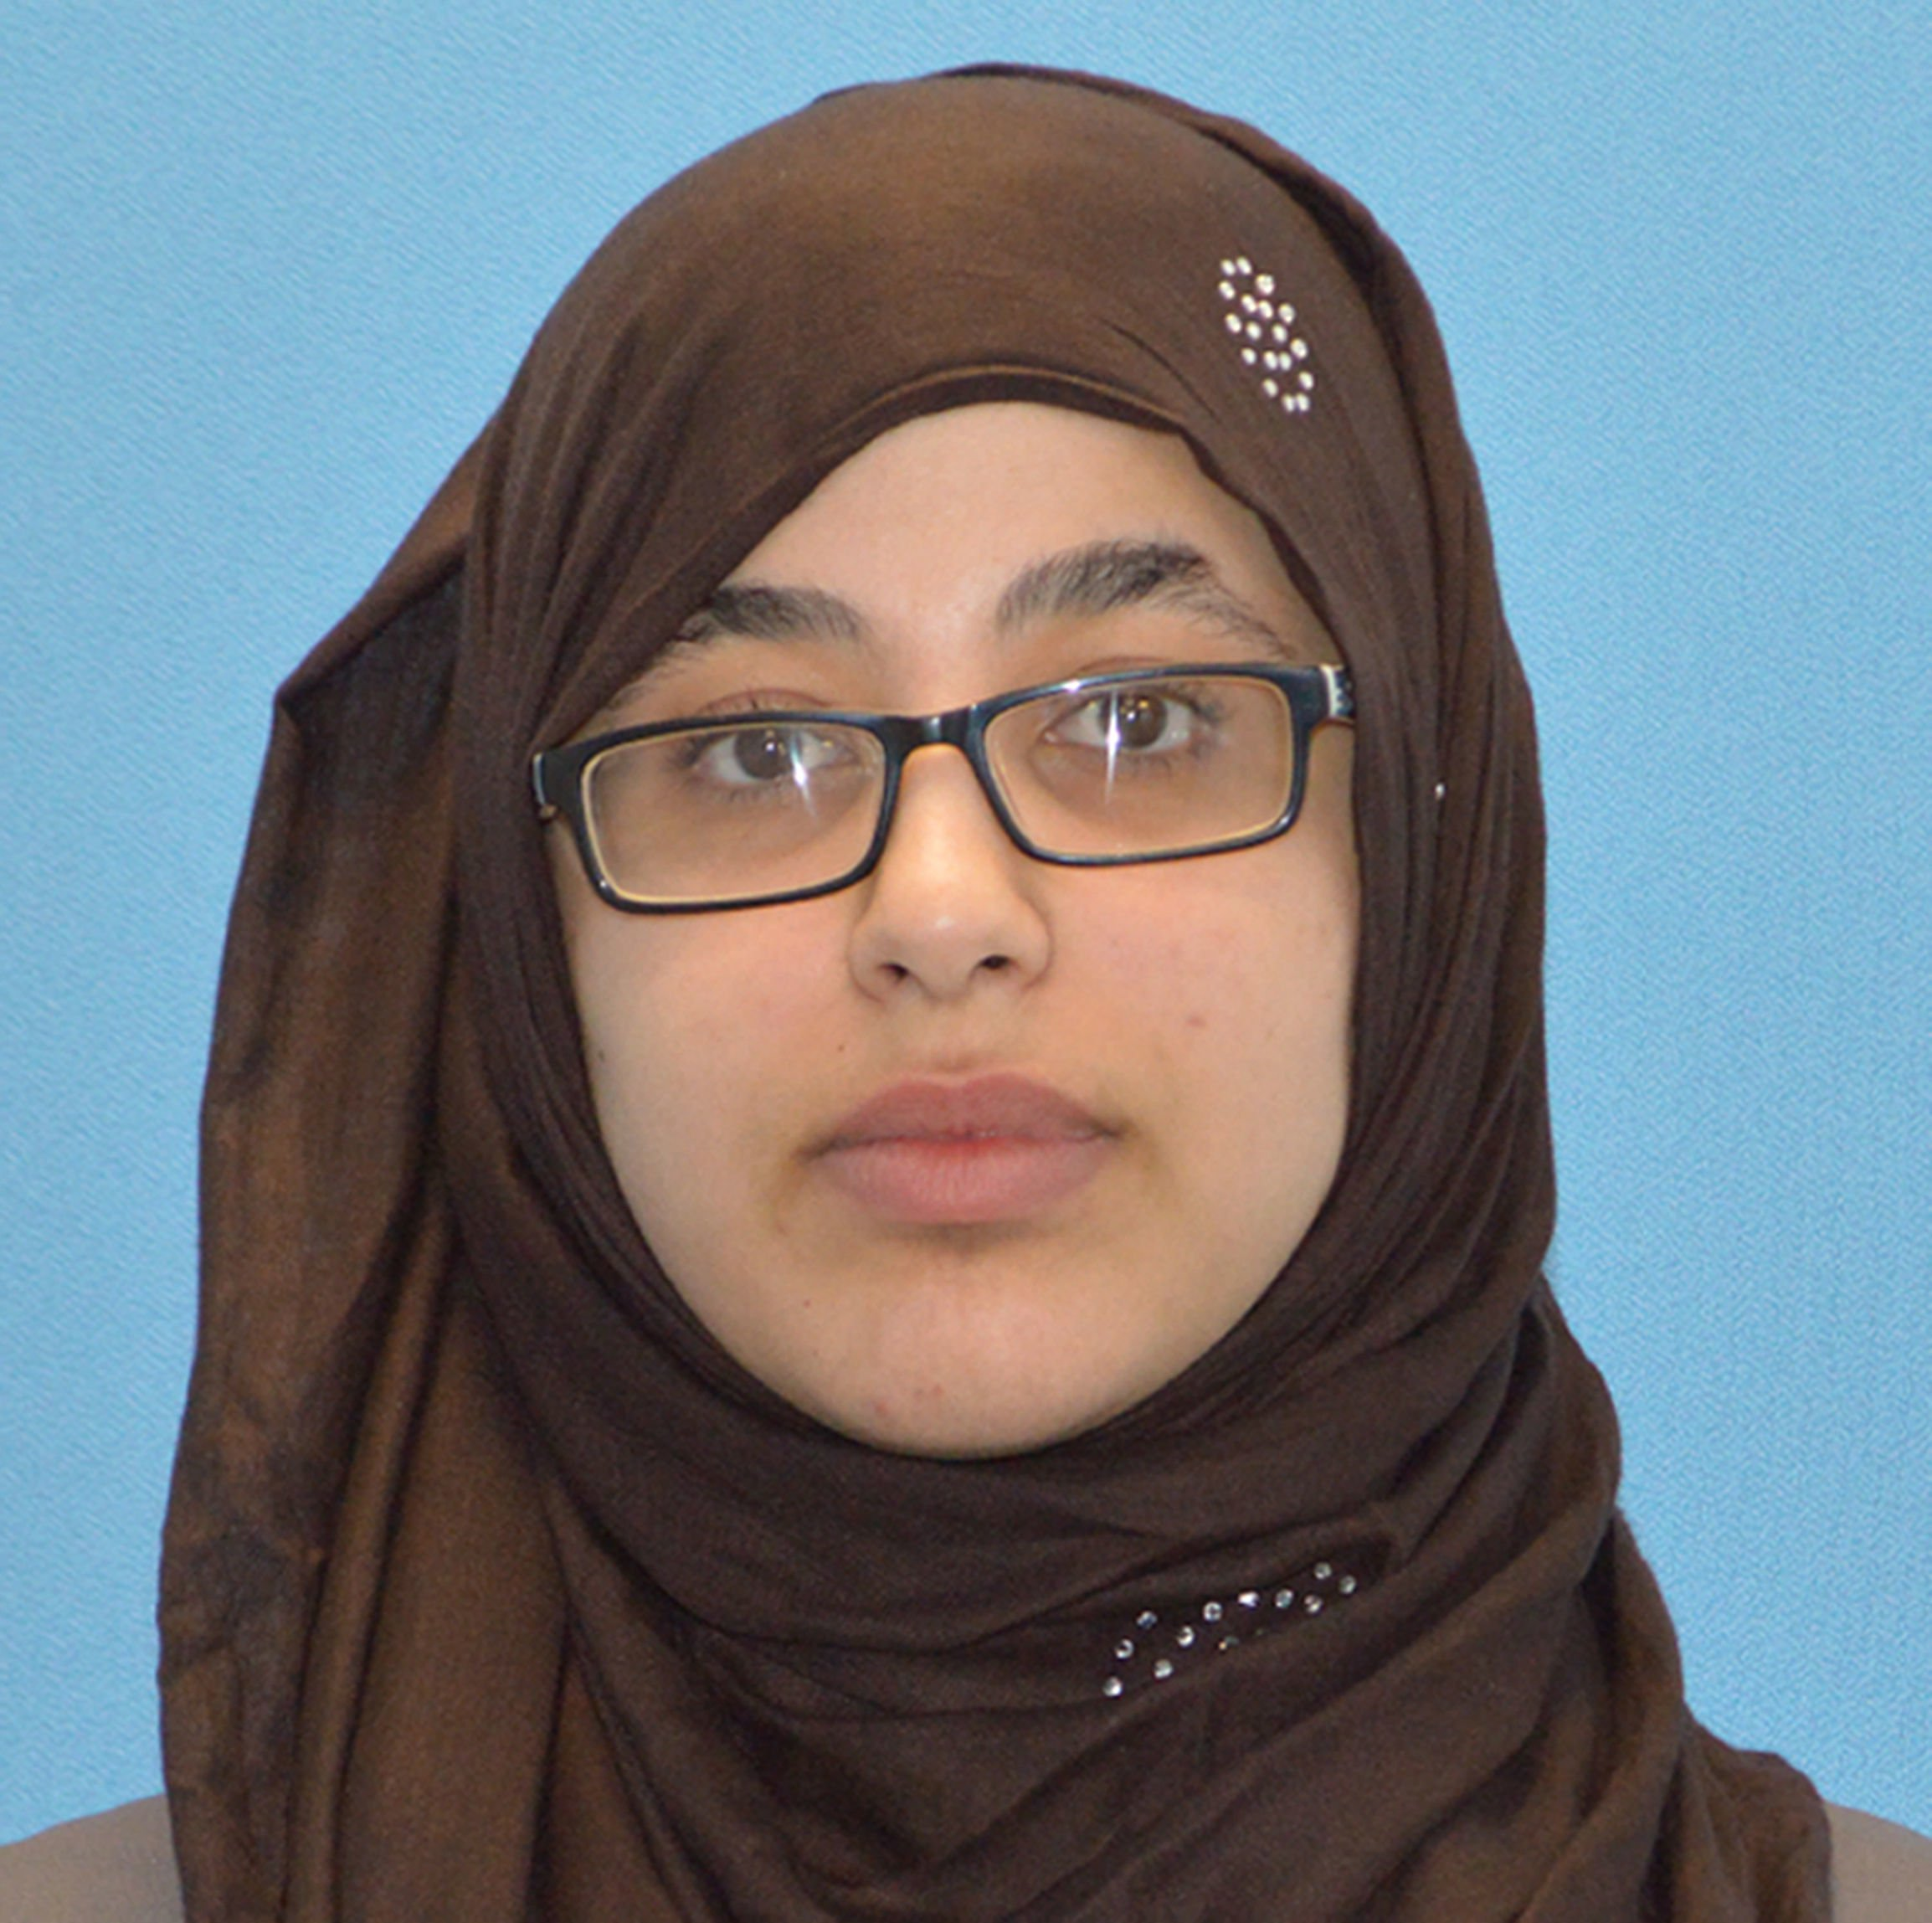 BEST QUALITY AVAILABLE Undated handout file photo issued by the Metropolitan Police of Khawla Barghouthi, 21, who has been jailed for two years and four months after she admitted failing to disclose Rizlaine Boular's Islamic State-inspired plan to authorities. PRESS ASSOCIATION Photo. Issue date: Friday June 22, 2018. See PA story COURTS Boular. Photo credit should read: Metropolitan Police/PA Wire NOTE TO EDITORS: This handout photo may only be used in for editorial reporting purposes for the contemporaneous illustration of events, things or the people in the image or facts mentioned in the caption. Reuse of the picture may require further permission from the copyright holder.